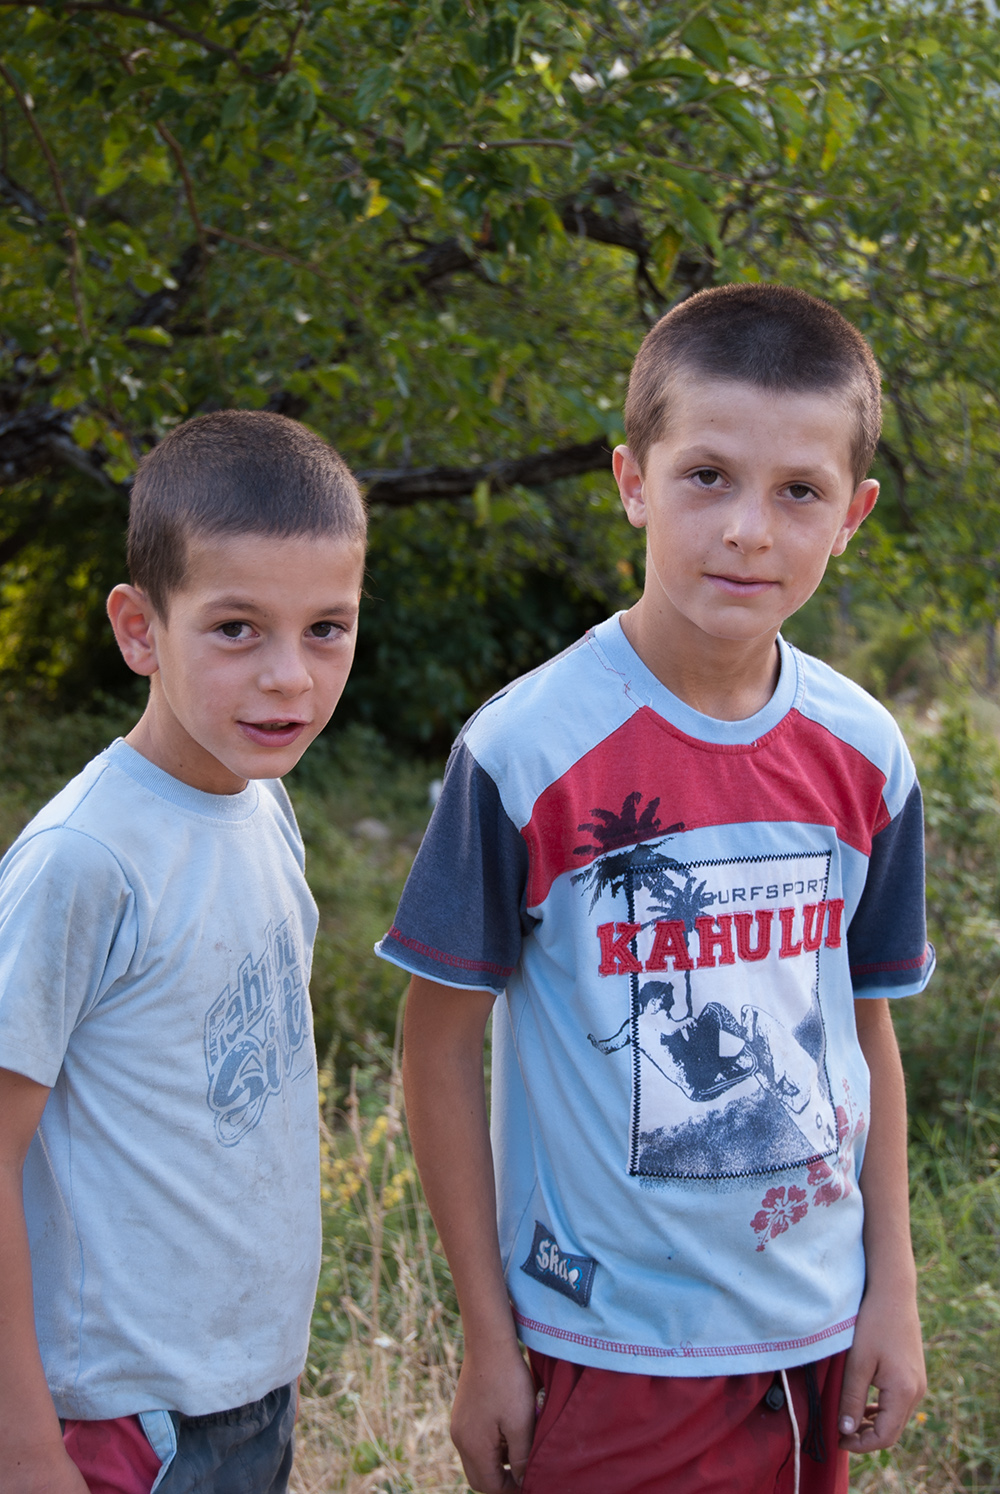 Portrait of two Boys, Orosh Mirditë, © alketa misja photography 2008